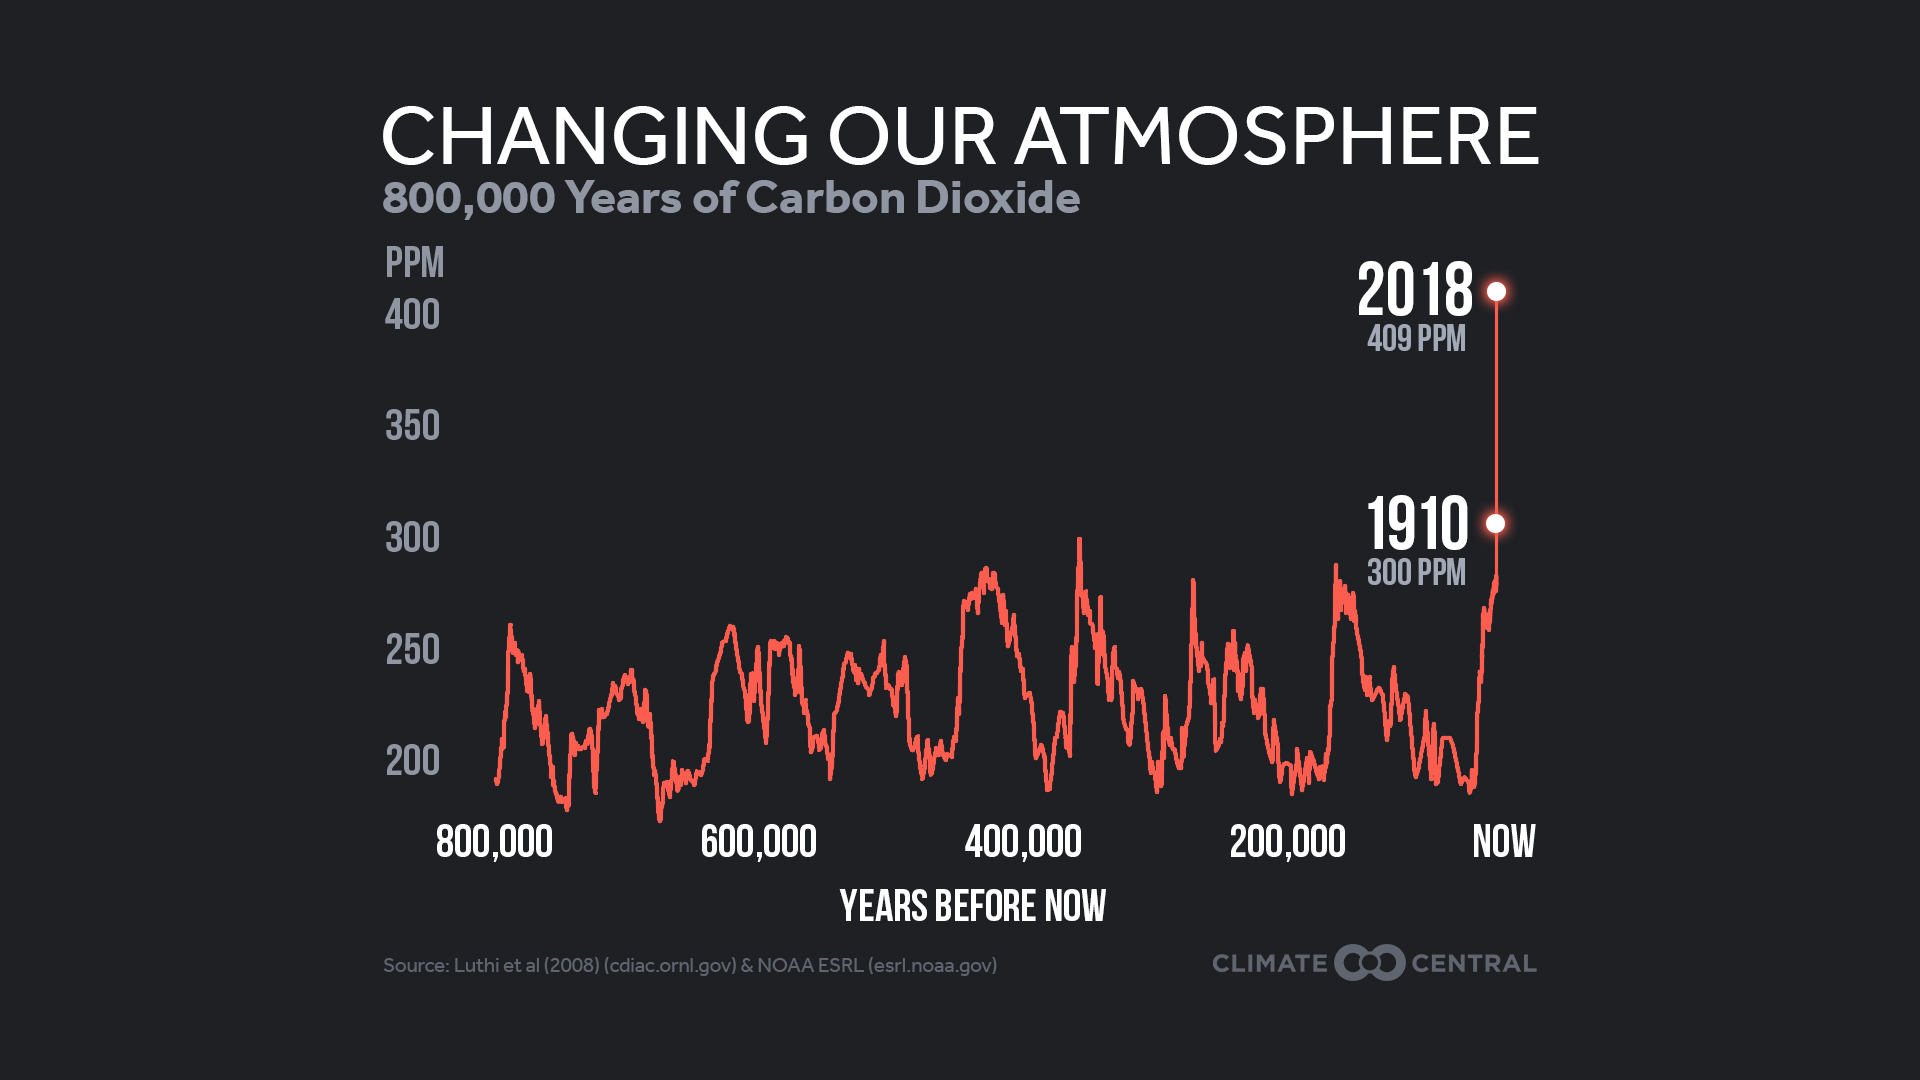 800,000 Years of Carbon Dioxide